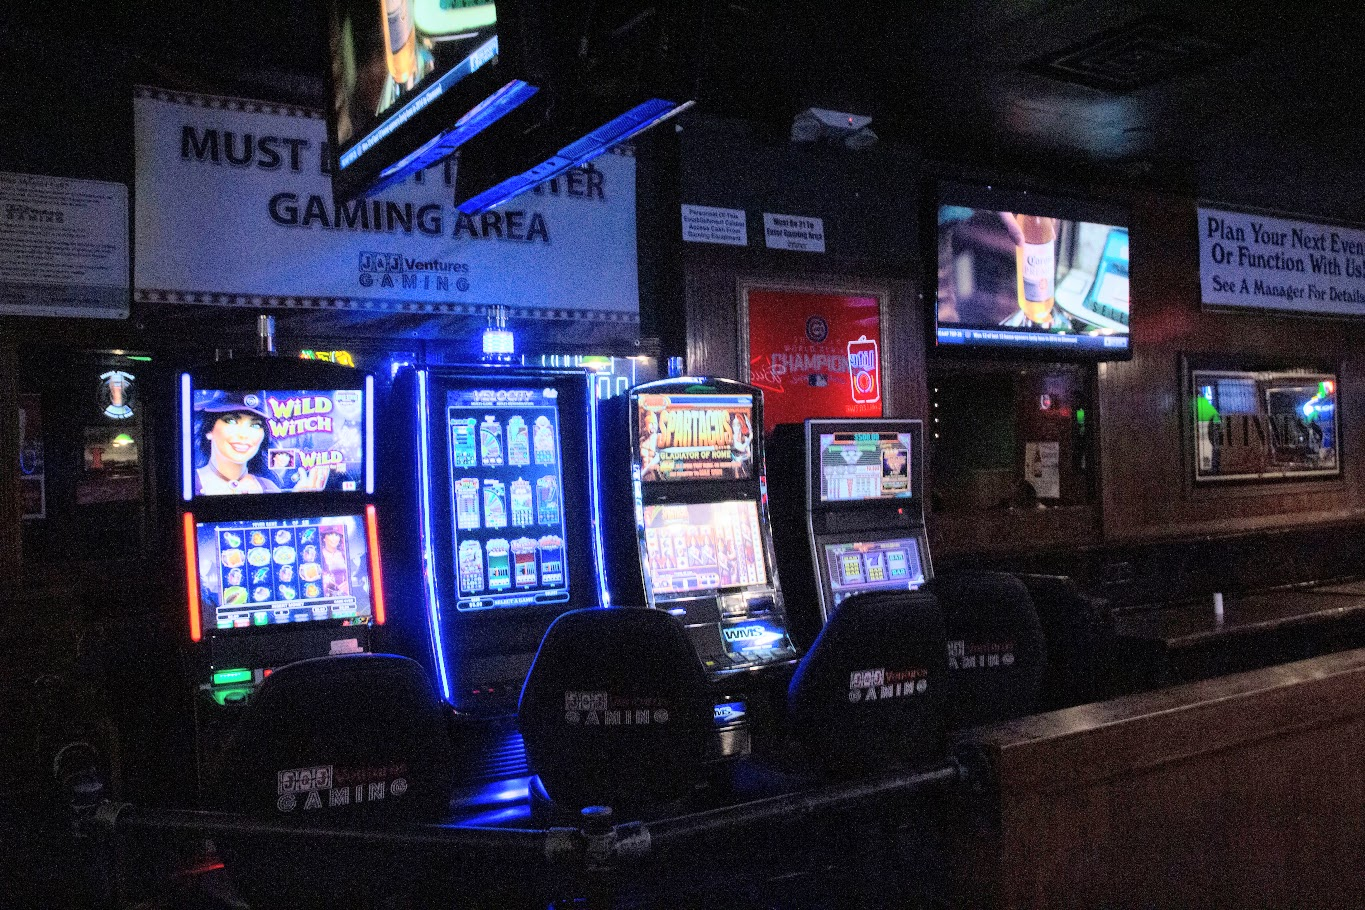 Murphy's Pub's gaming area is located toward the back of the bar. Gambling has been greatly expanded in Illinois following a bill signed by Gov. J.B. Pritzker earlier this year.